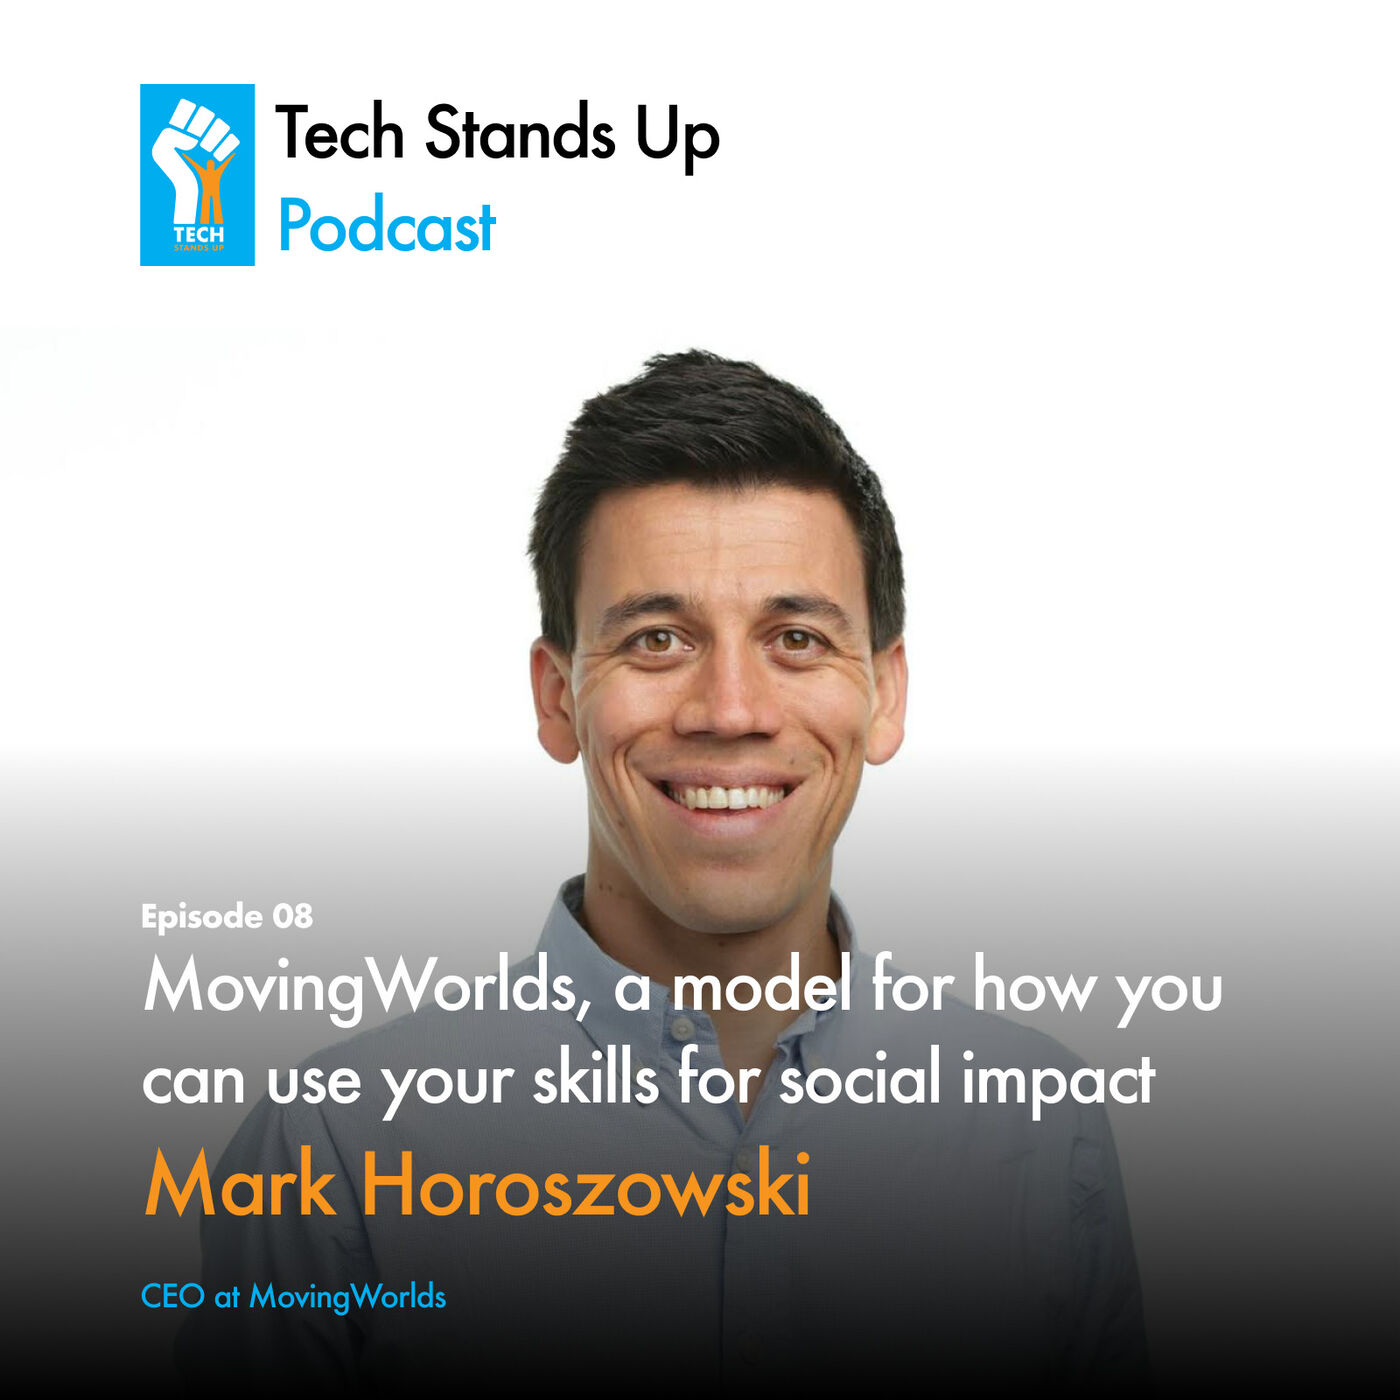 Mark Horoszowski: MovingWorlds, a model for how you can use your skills for social impact